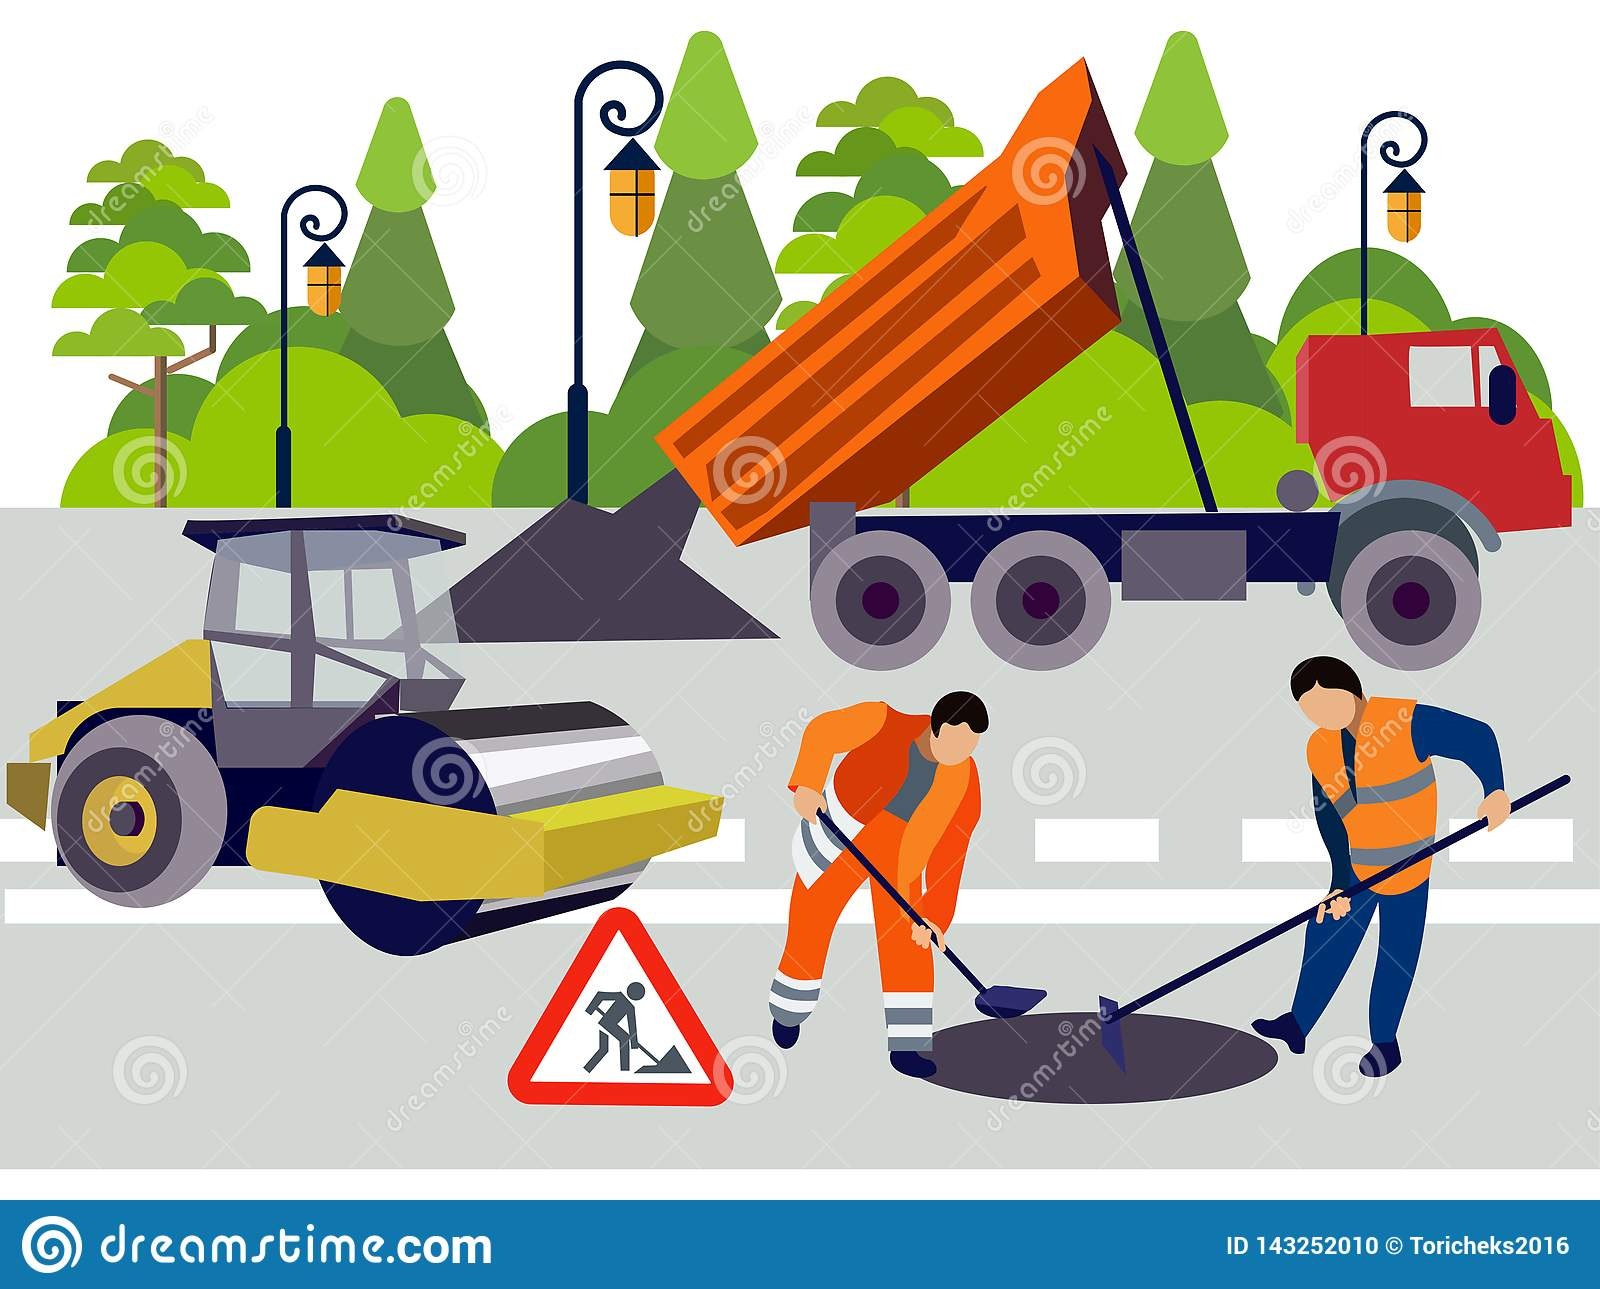 Employees of road works. Equipment and materials for repair. In minimalist style. Flat isometric vector